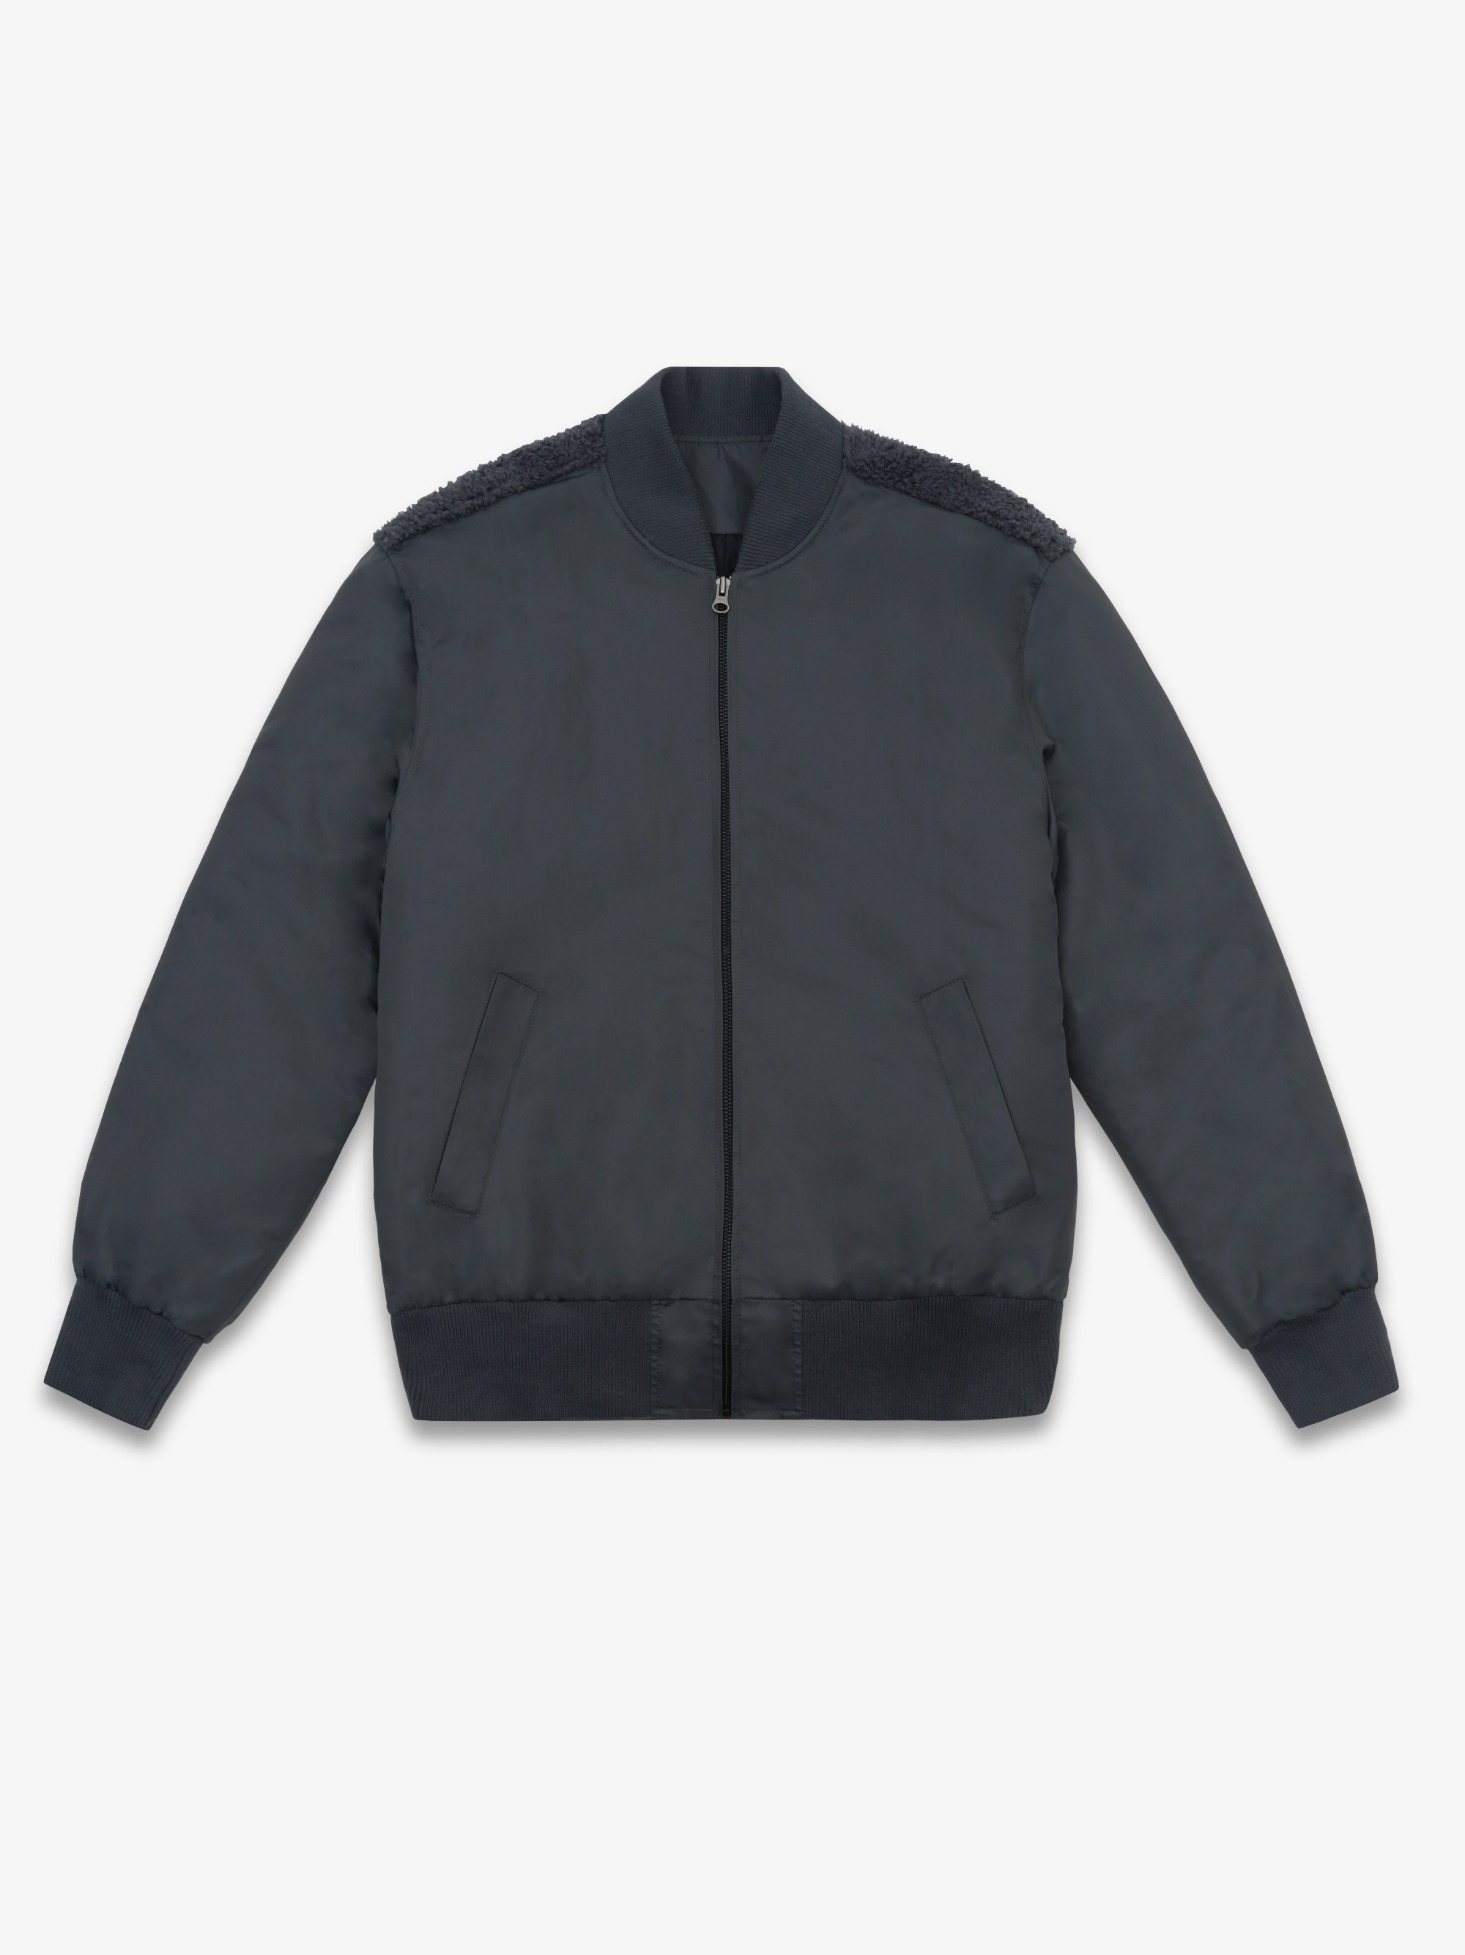 LAMBS WOOL MA-1 BOMBER (CHARCOAL) 시즌오프 60% 특별할인 220,000원 ->